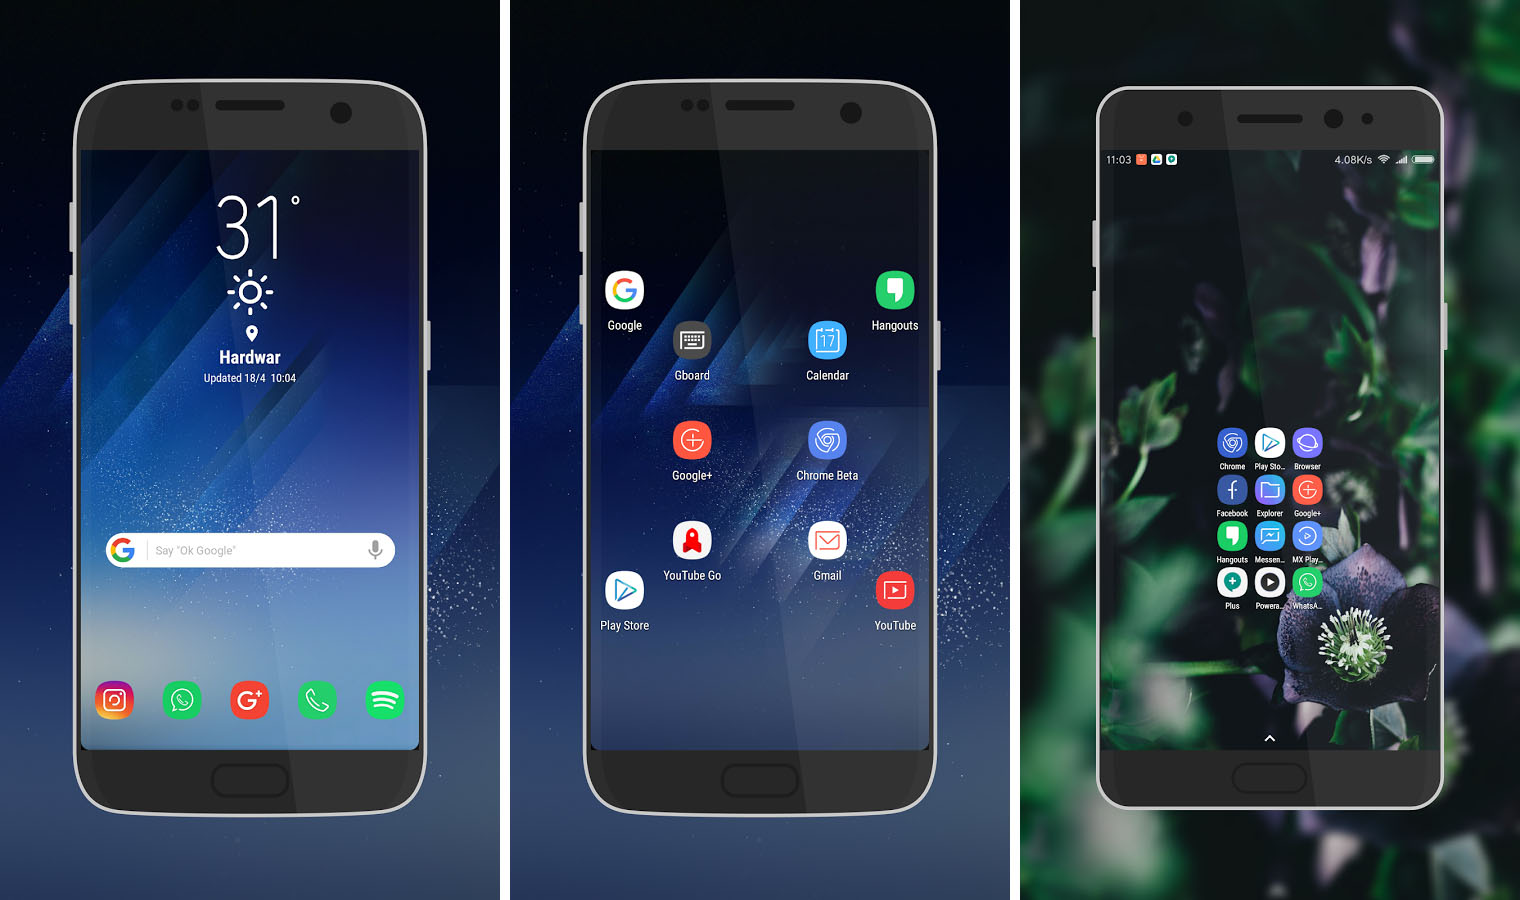 Samsung Galaxy S8 and S8+ - The Official Samsung Galaxy Site